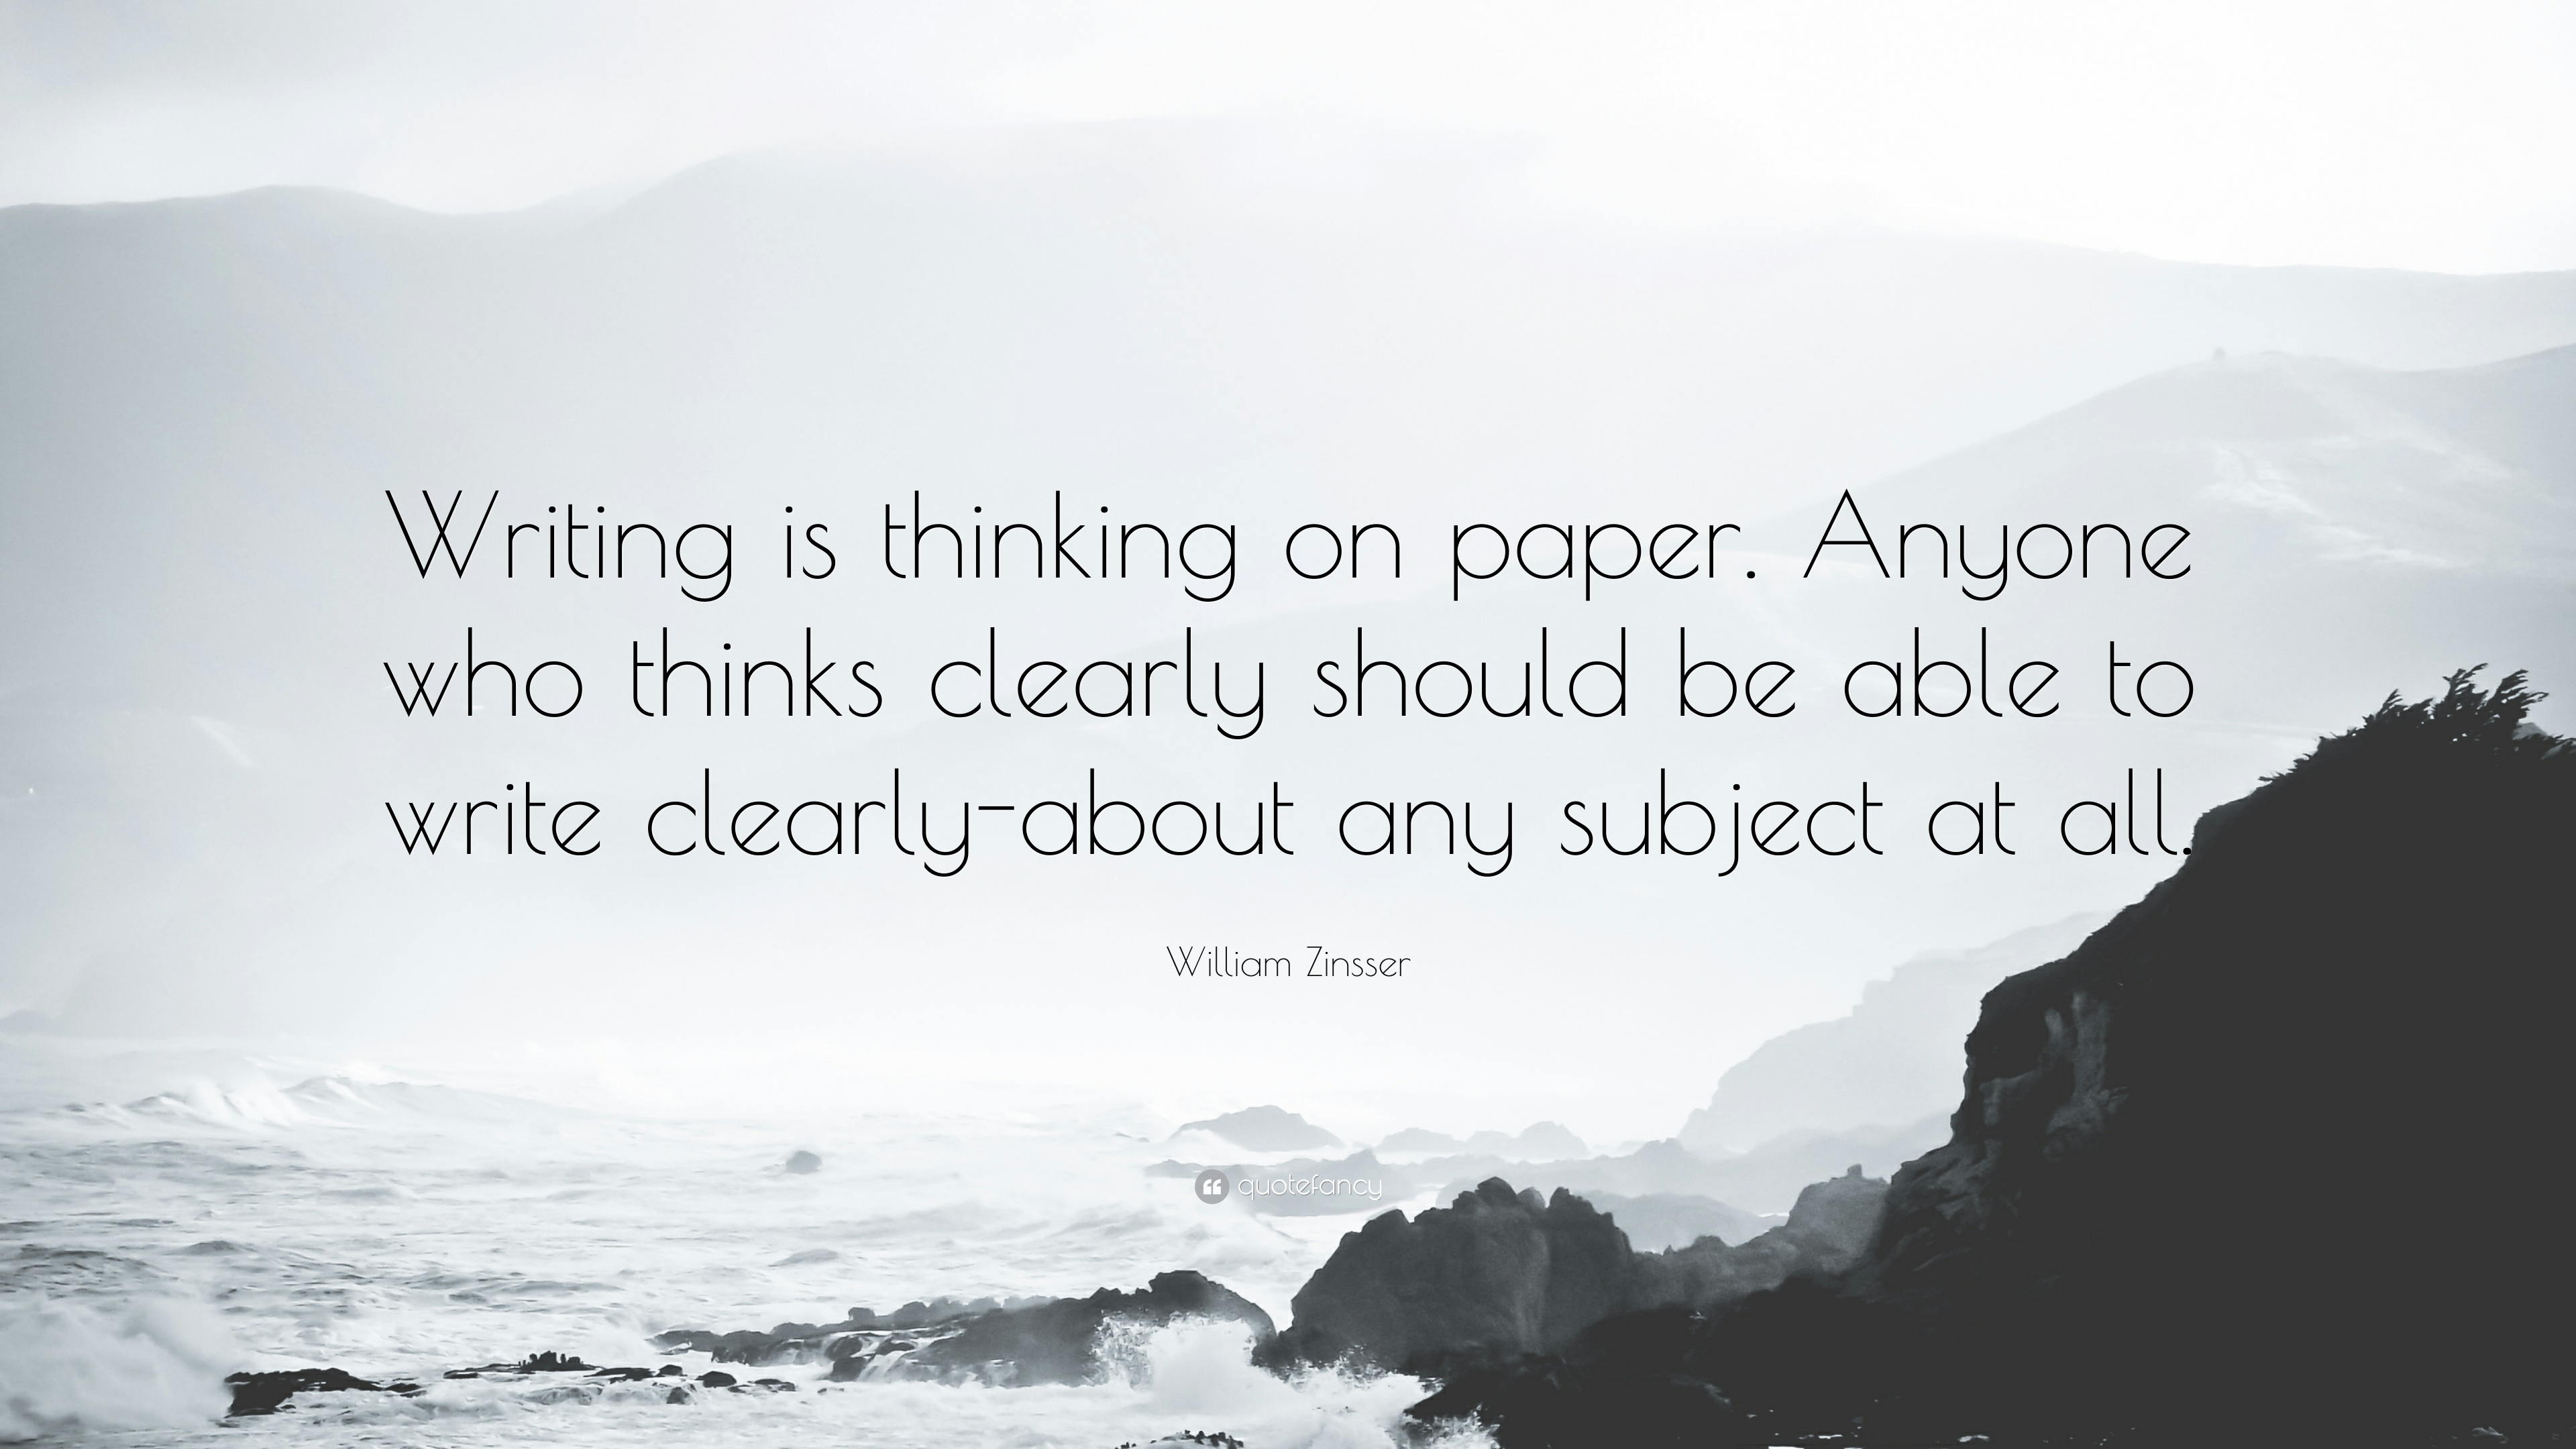 writing is thinking on paper